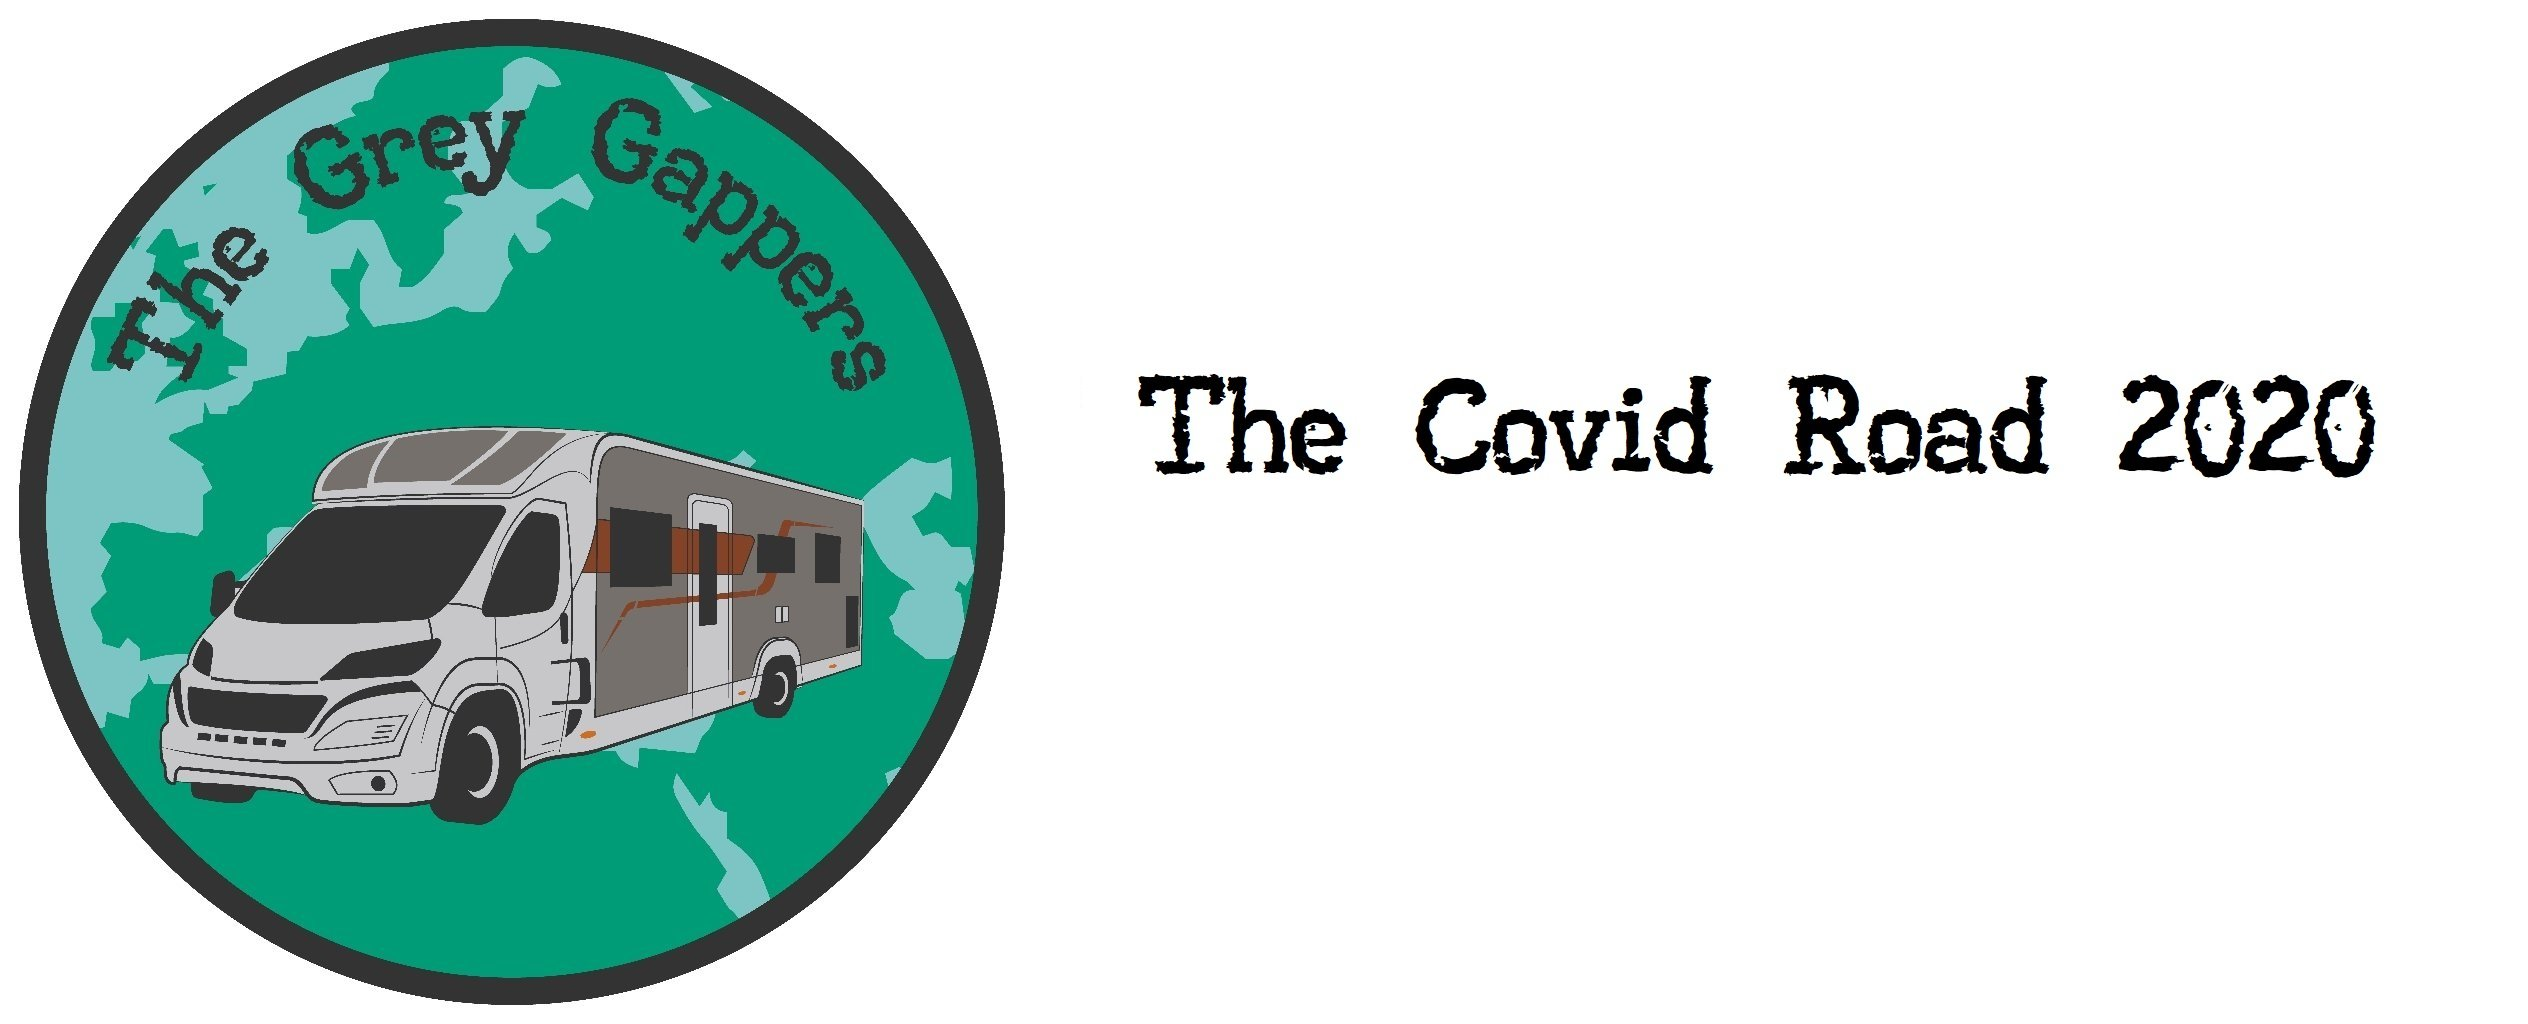 The Gray Gappers - The Covid Road 2020